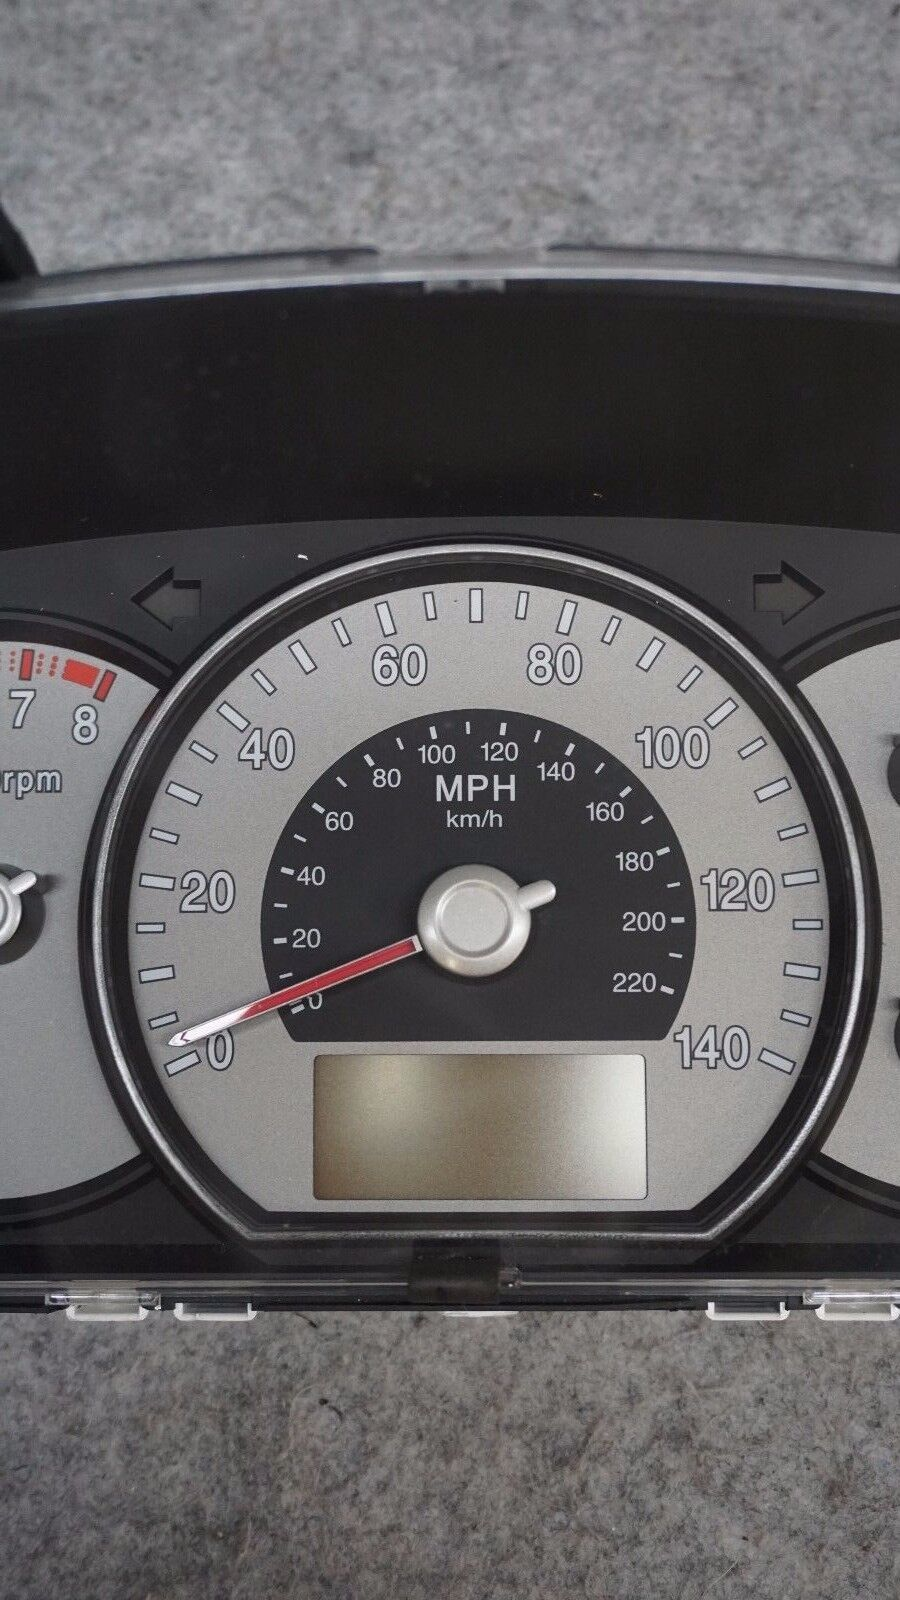 Used Kia Gauges For Sale Page 44 Sedona 2007 2008 Rondo Speedometer Instrument Gauge Cluster Unknown Miles 940011d420